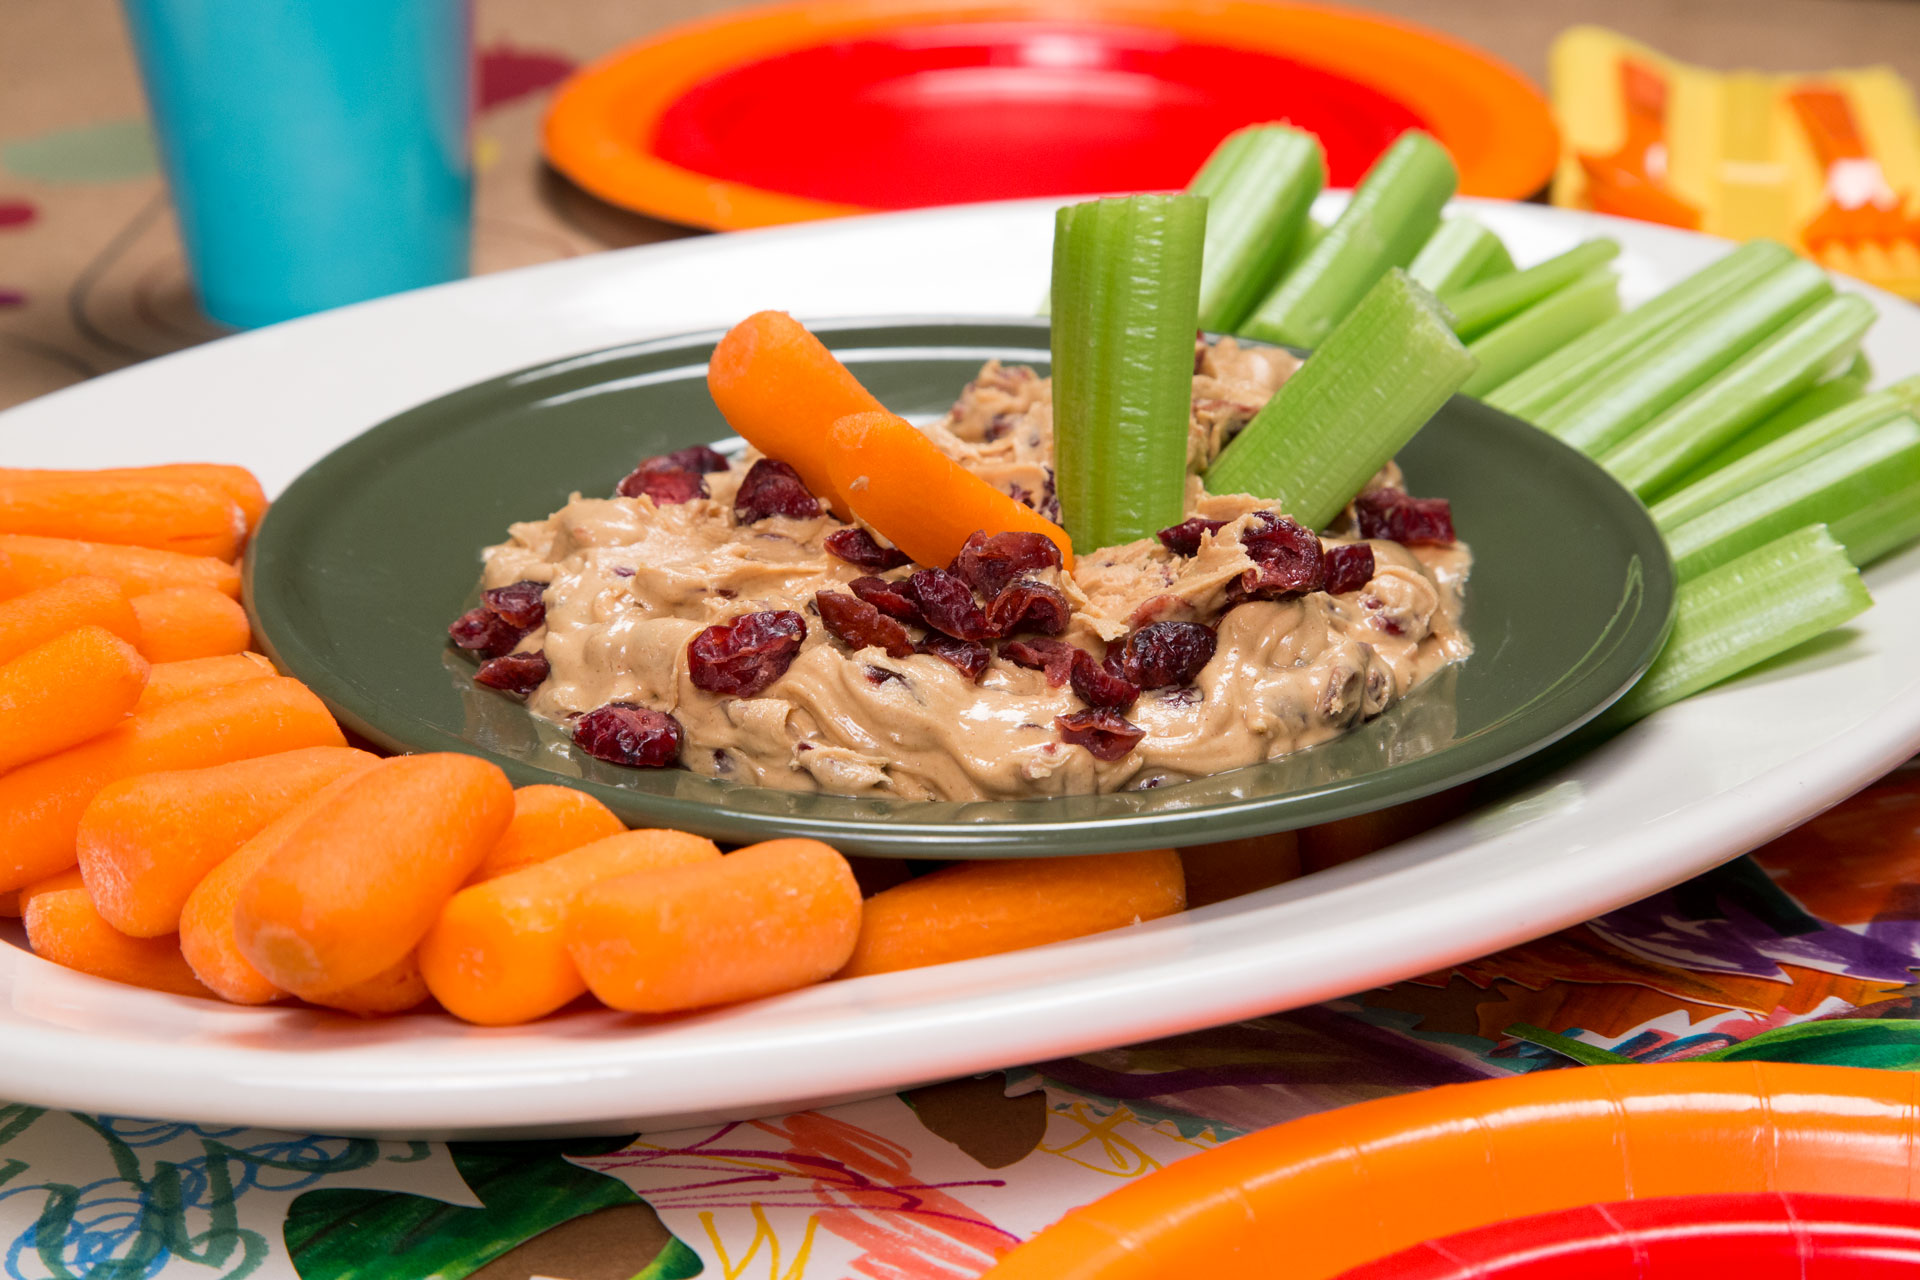 Cranberry Peanut Butter Dip// Photo by Lance Mellebruch